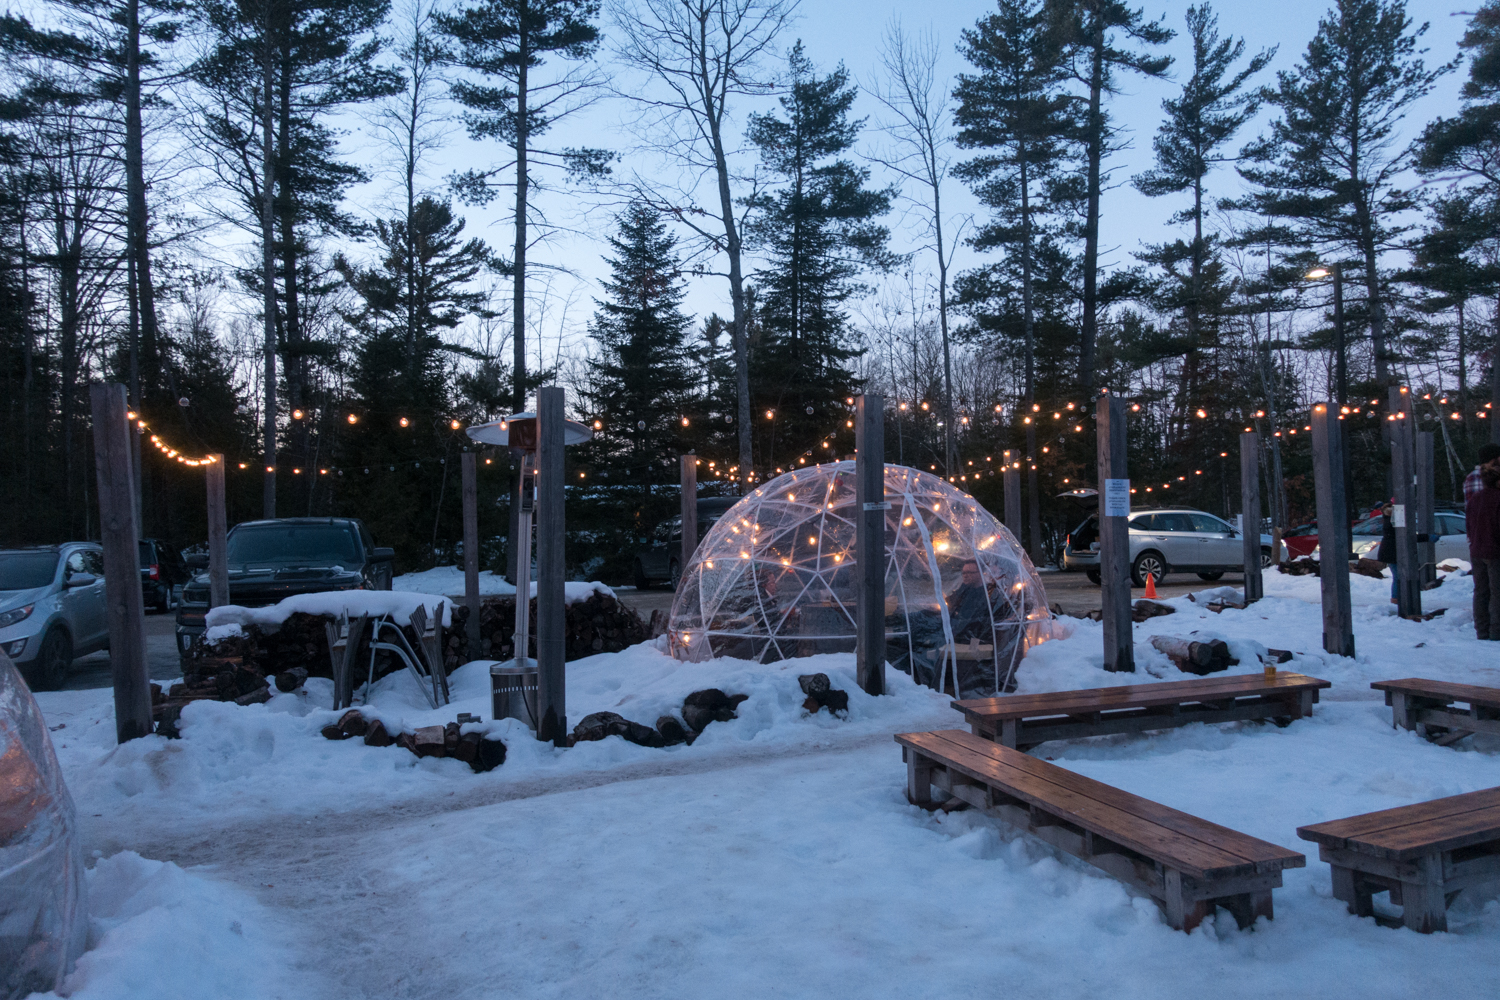 igloos at Hop Lot Brewing, located in Sutton's Bay.  #michigan #travel